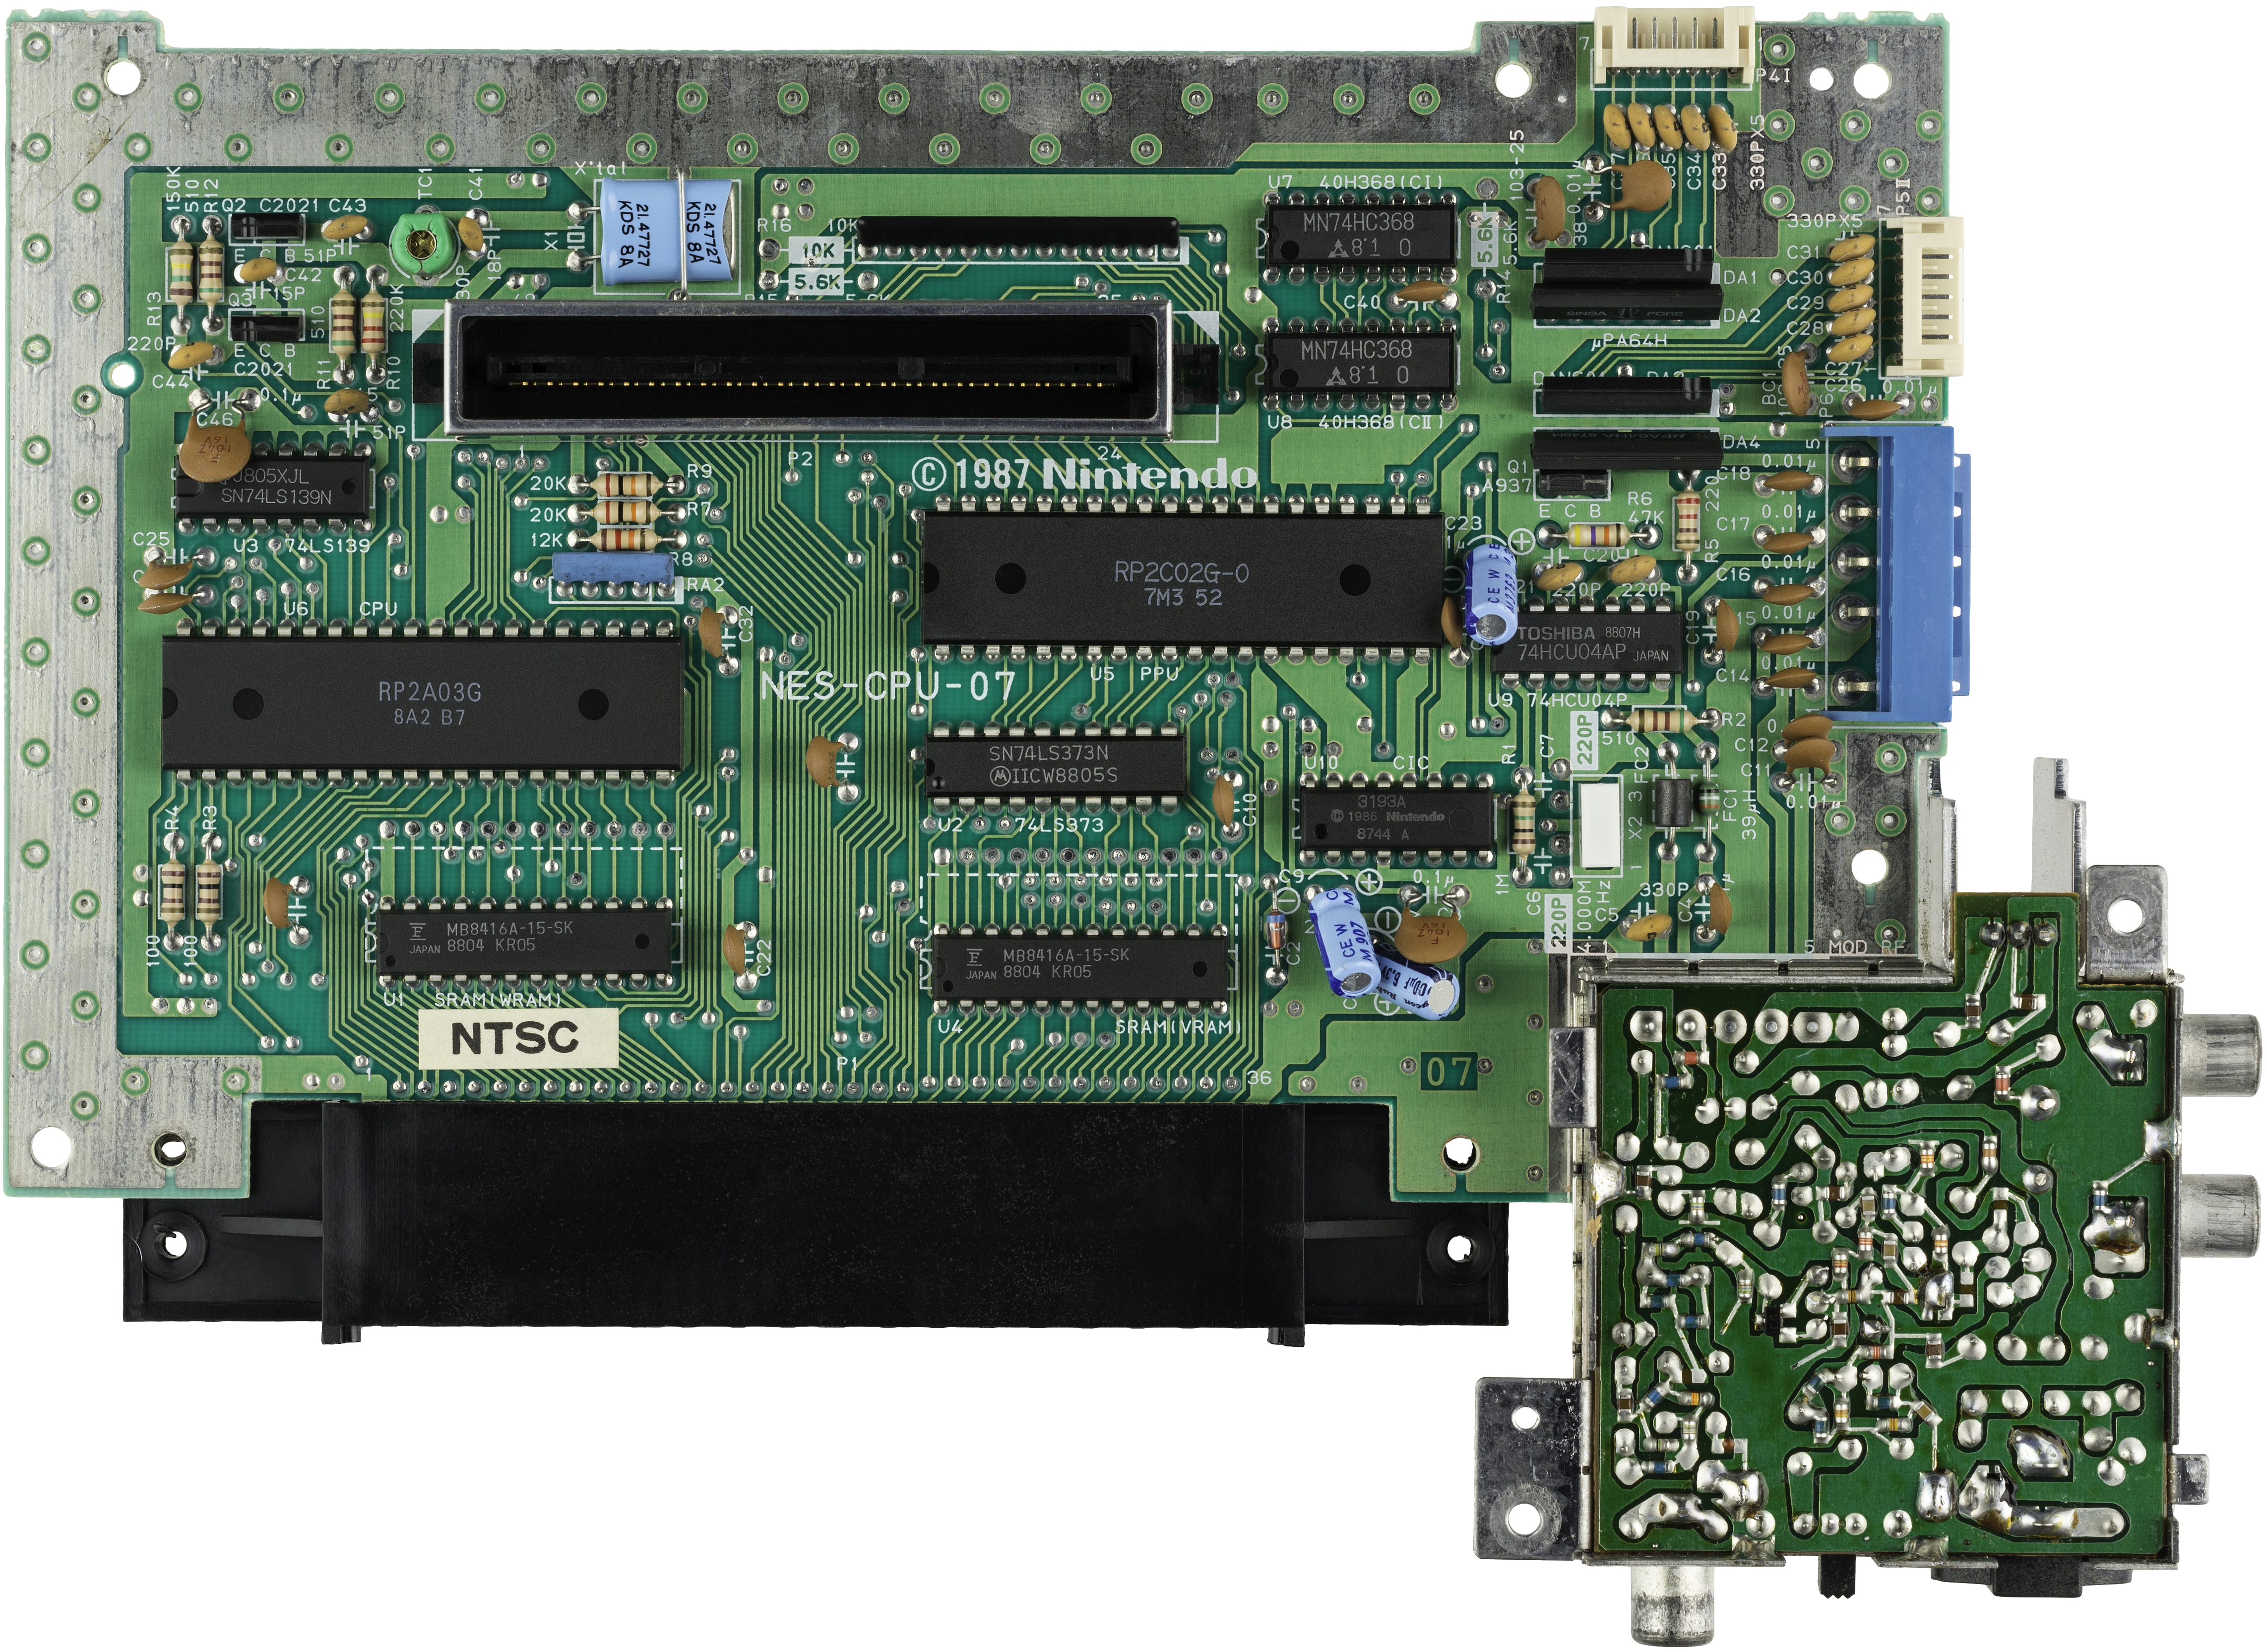 Nintendo entertainment system motherboard diagram with labels easy file nintendo nes mk1 motherboard top jpg wikimedia commons rh commons wikimedia org atx motherboard diagram with labels graphic motherboard power diagram ccuart Image collections